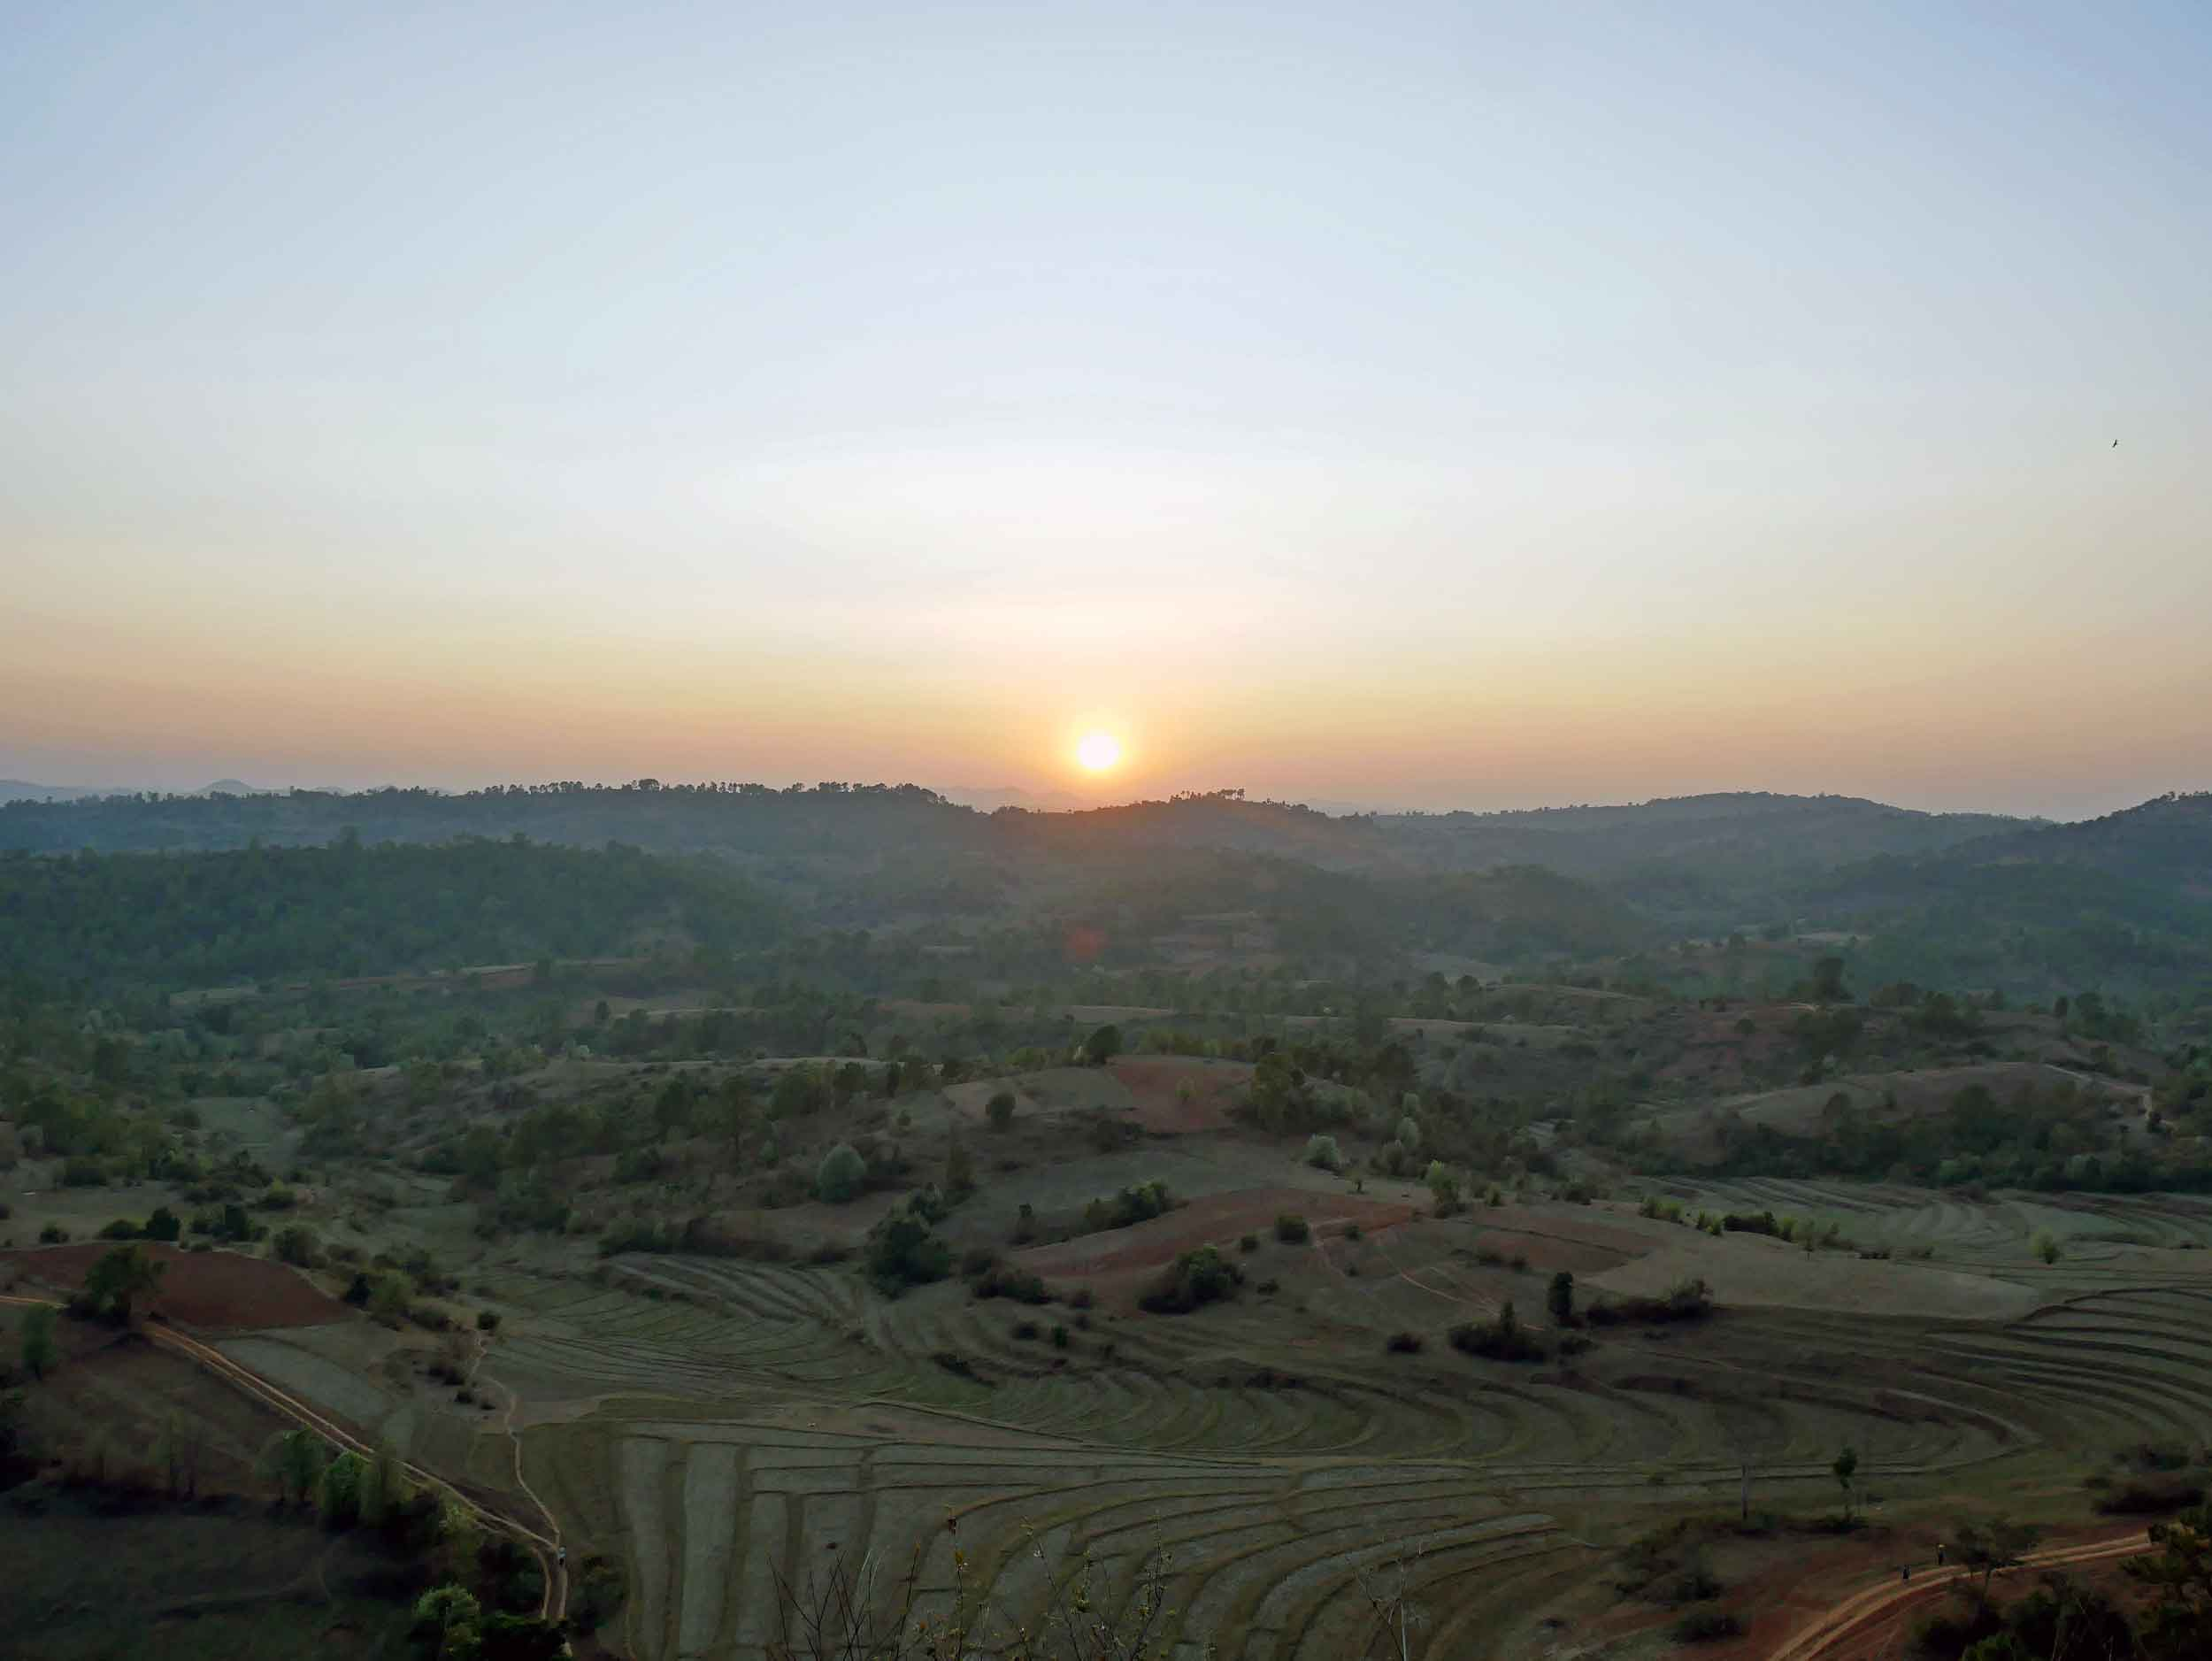 We took in a panoramic view over the fields and hills of Burma as the sun sat on our first day of walking (Feb 20).